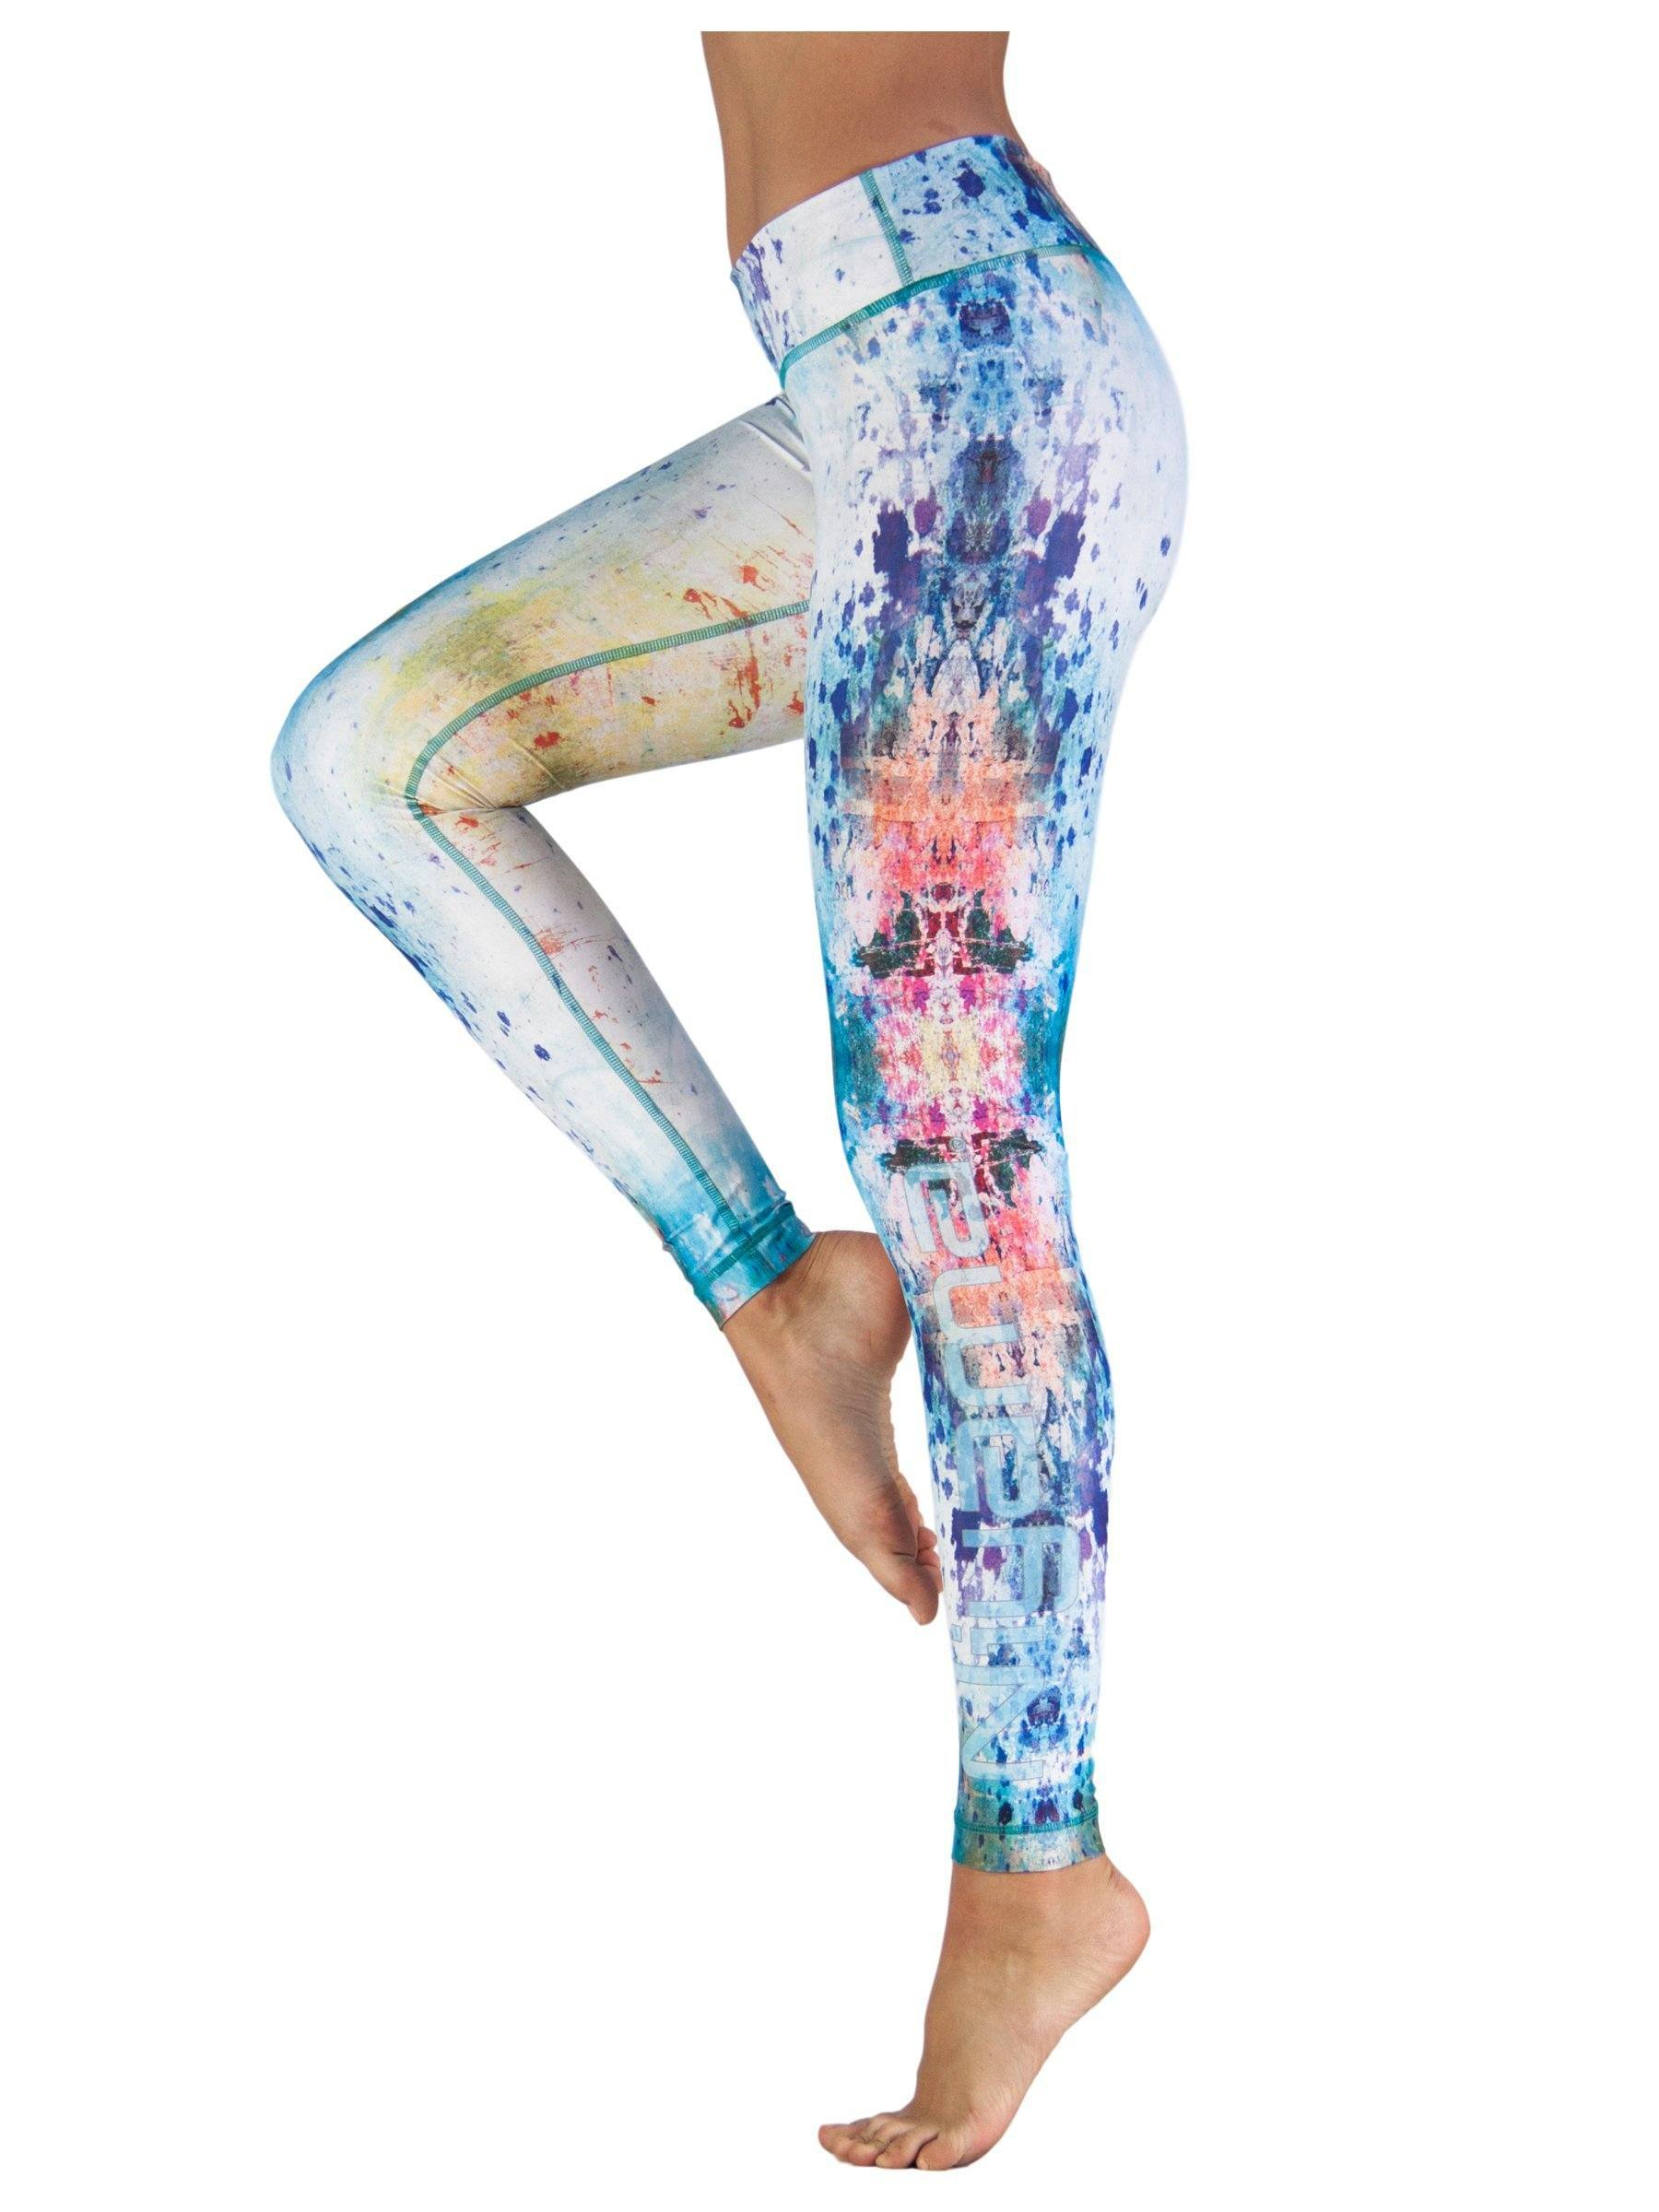 Crazy Drop by Niyama - High Quality, , Yoga Legging for Movement Artists.